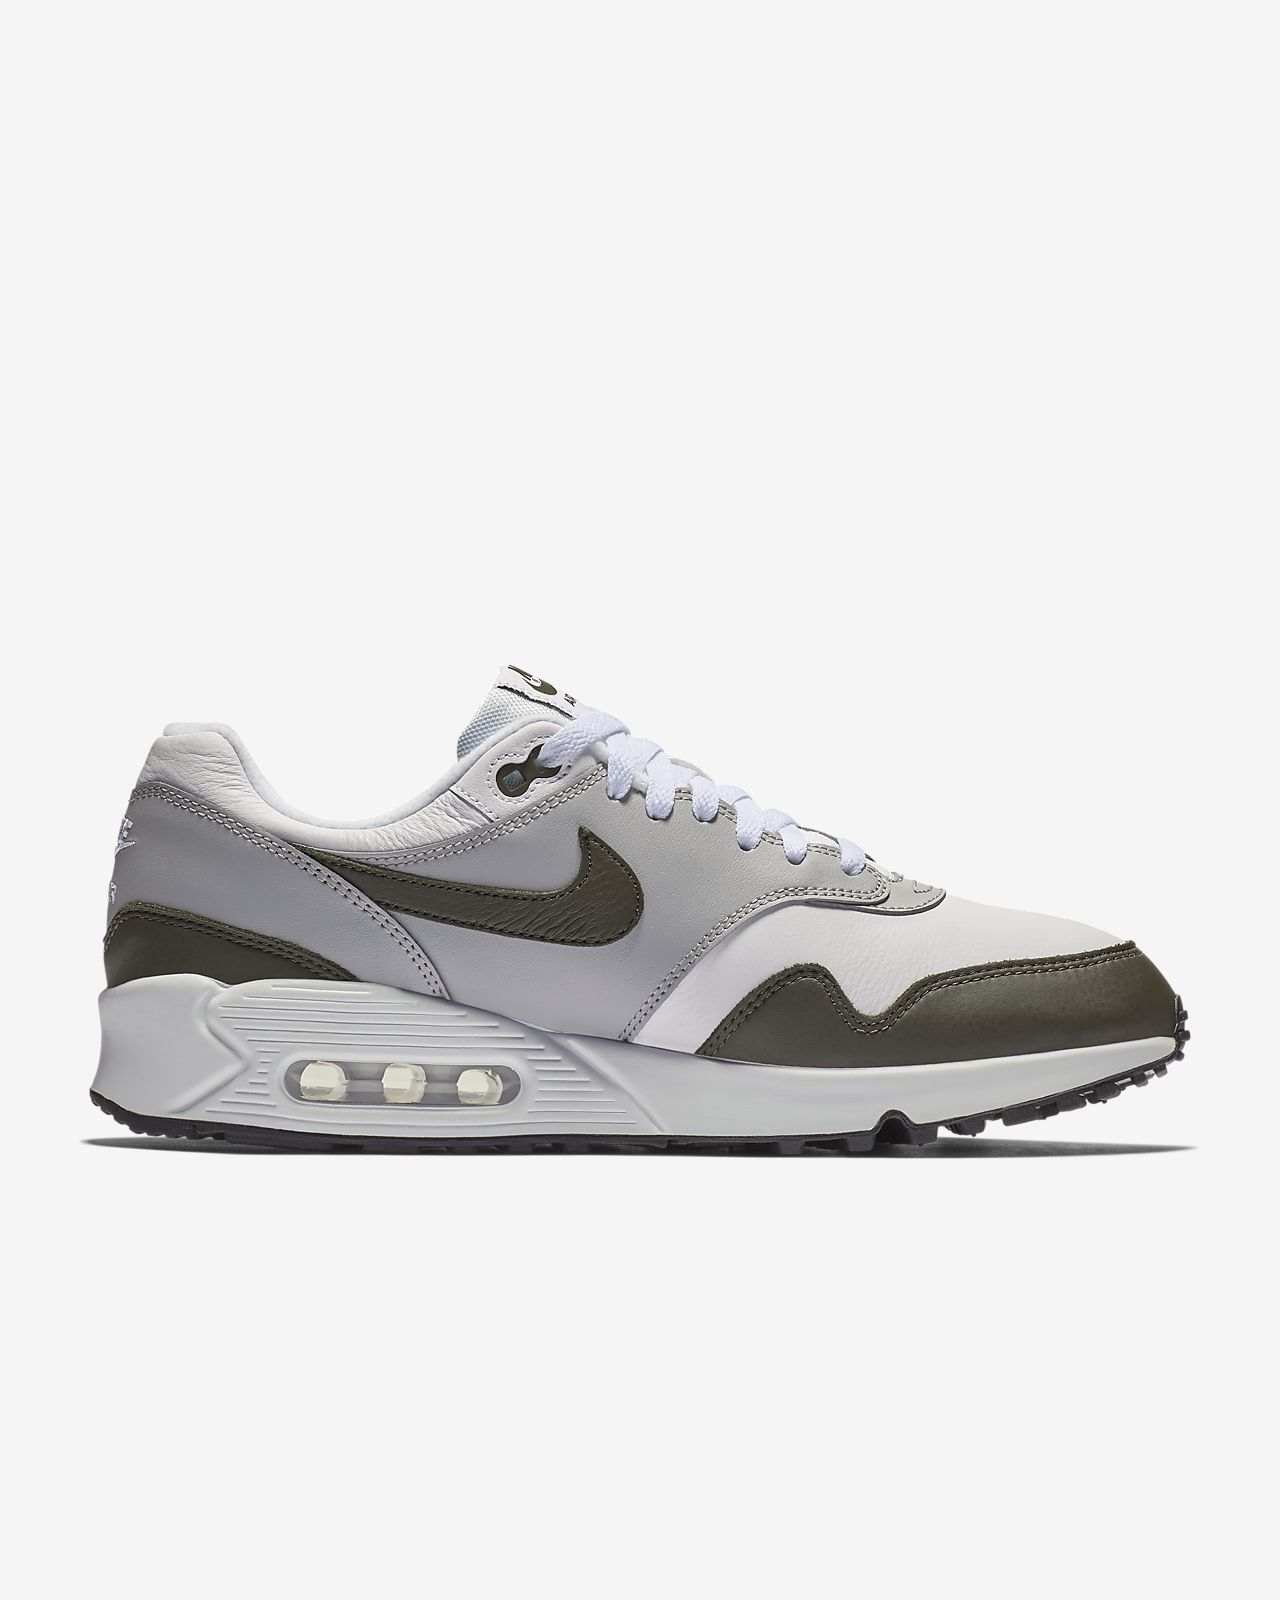 the best attitude 3716f 311a5 ... Chaussure Nike Air Max 90 1 pour Homme